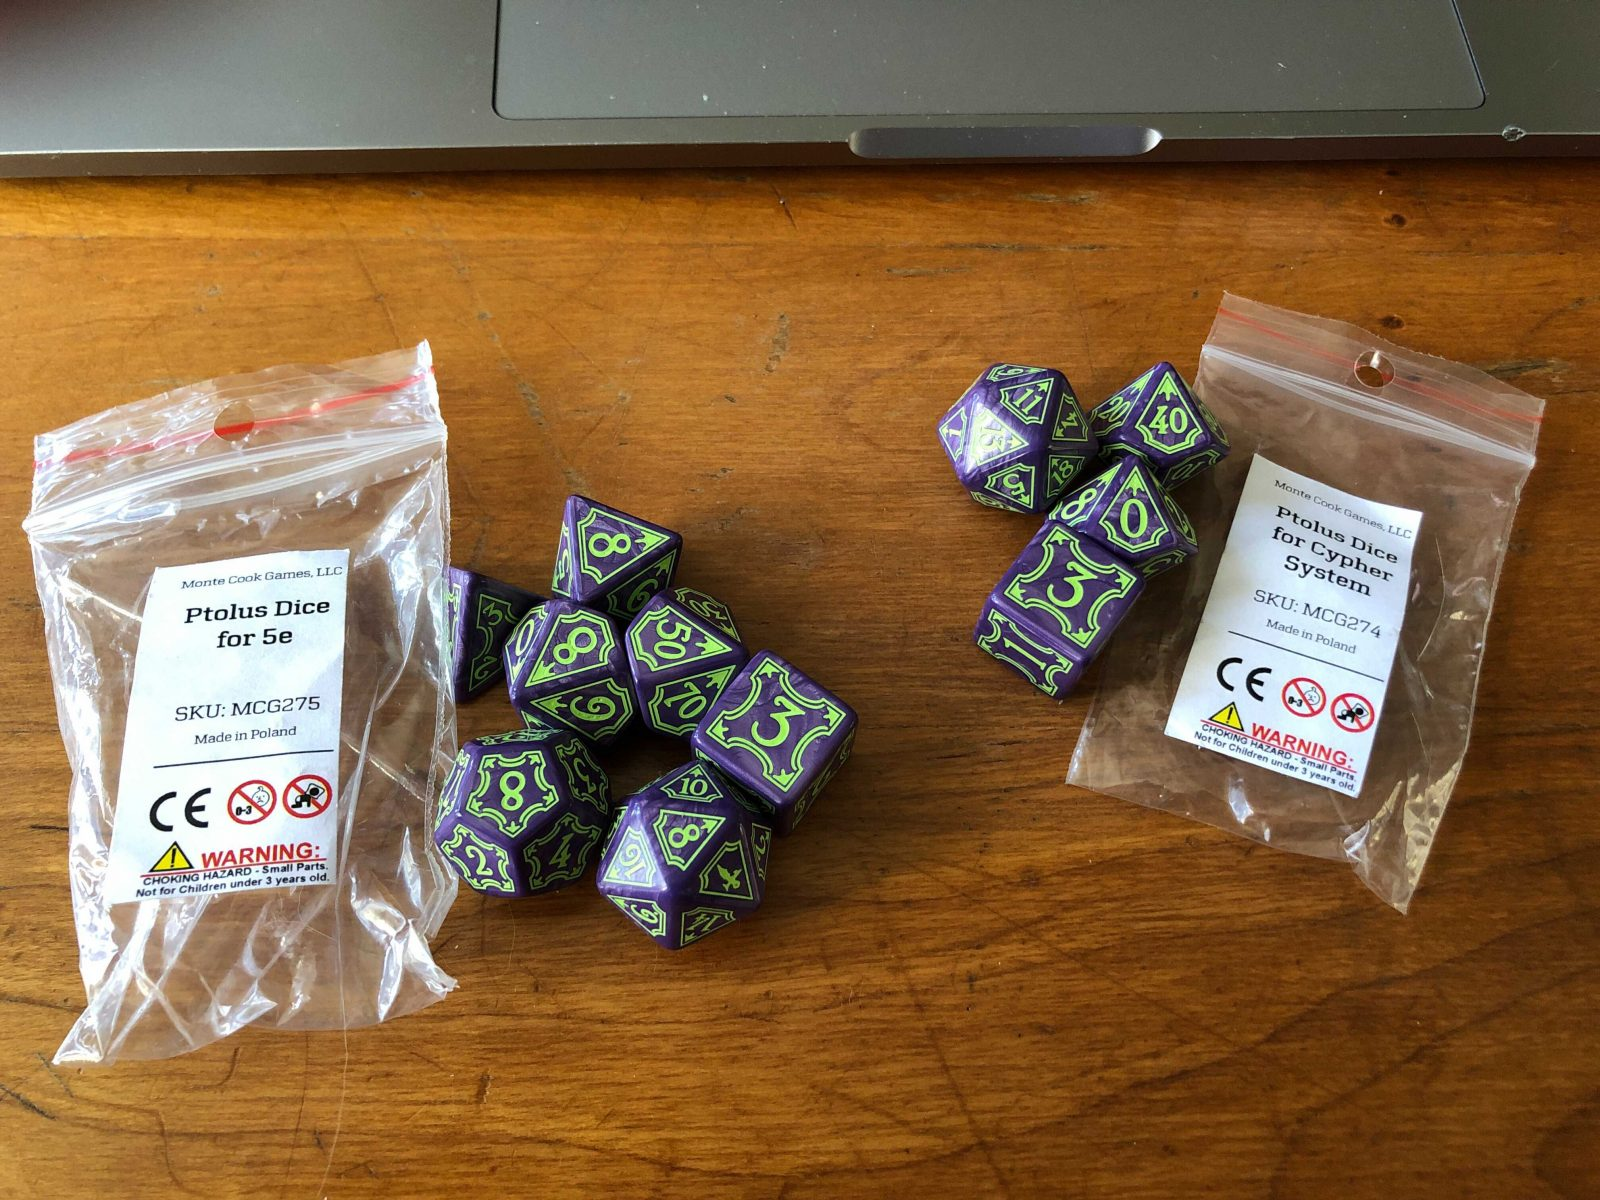 Photo of Ptolus Dice for 5E & Cypher System